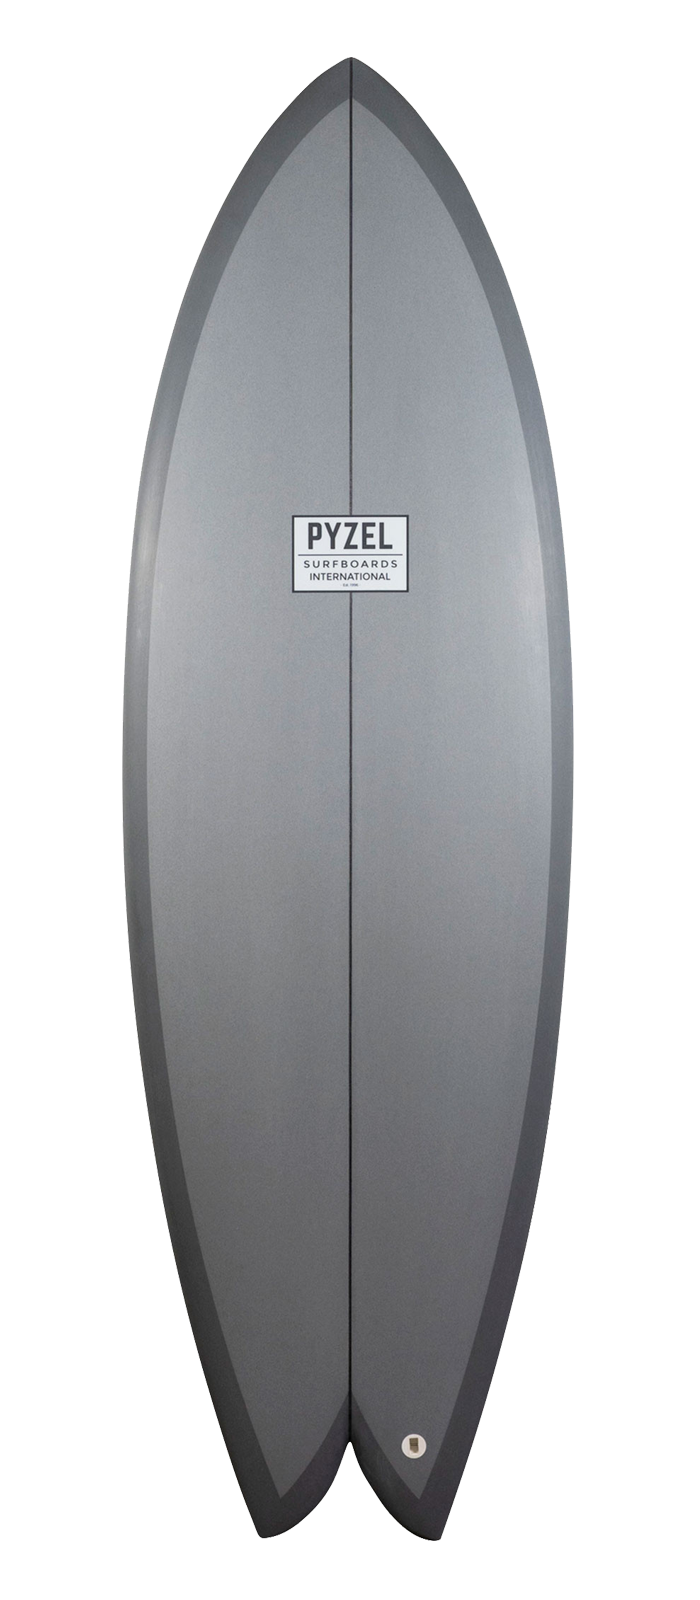 ASTRO surfboard model deck